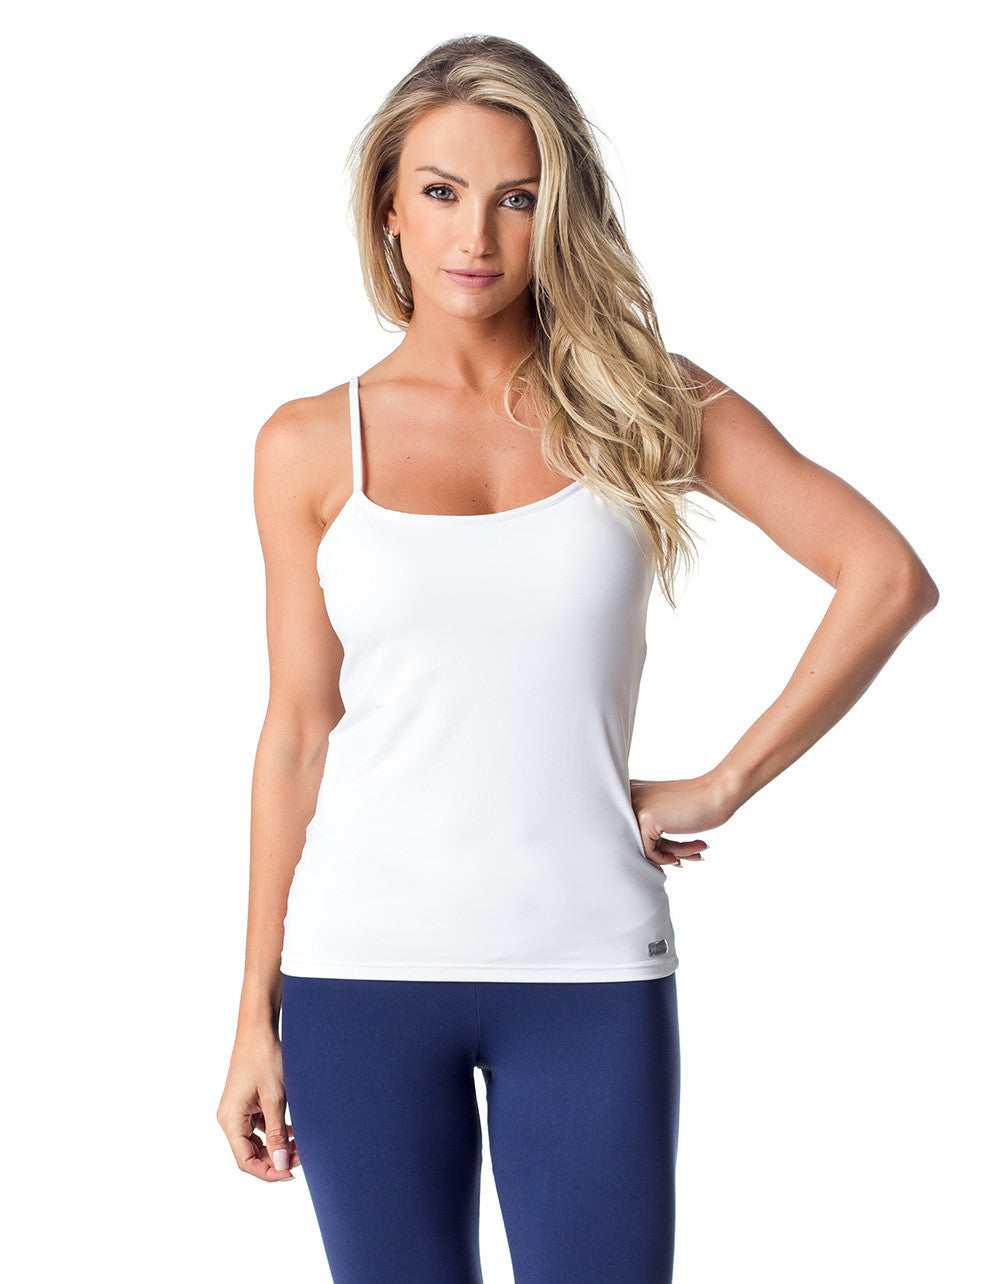 TANK TOP 53 THIN STRAP PADDED WHITE